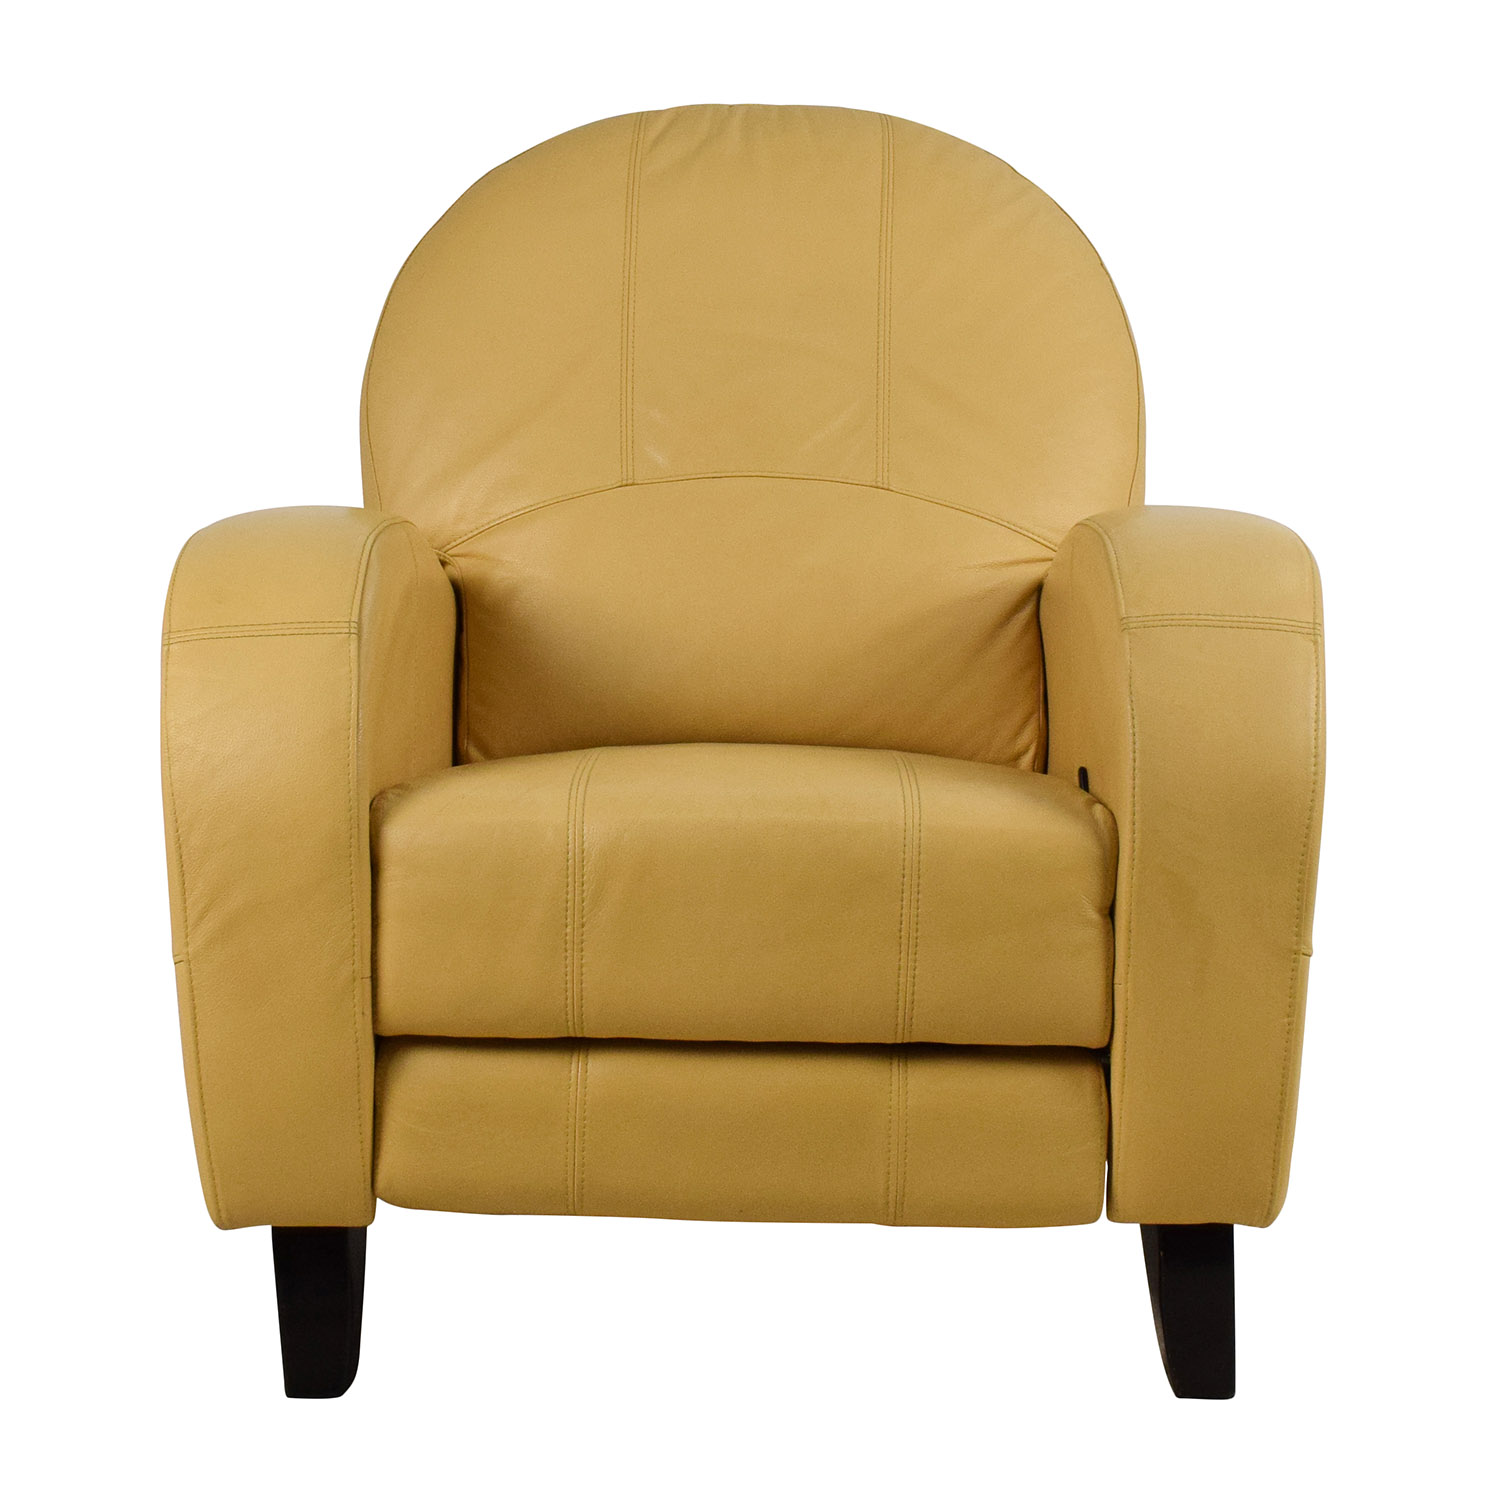 Beau Dutailier Dutailier Rondo Recliner For Sale ...